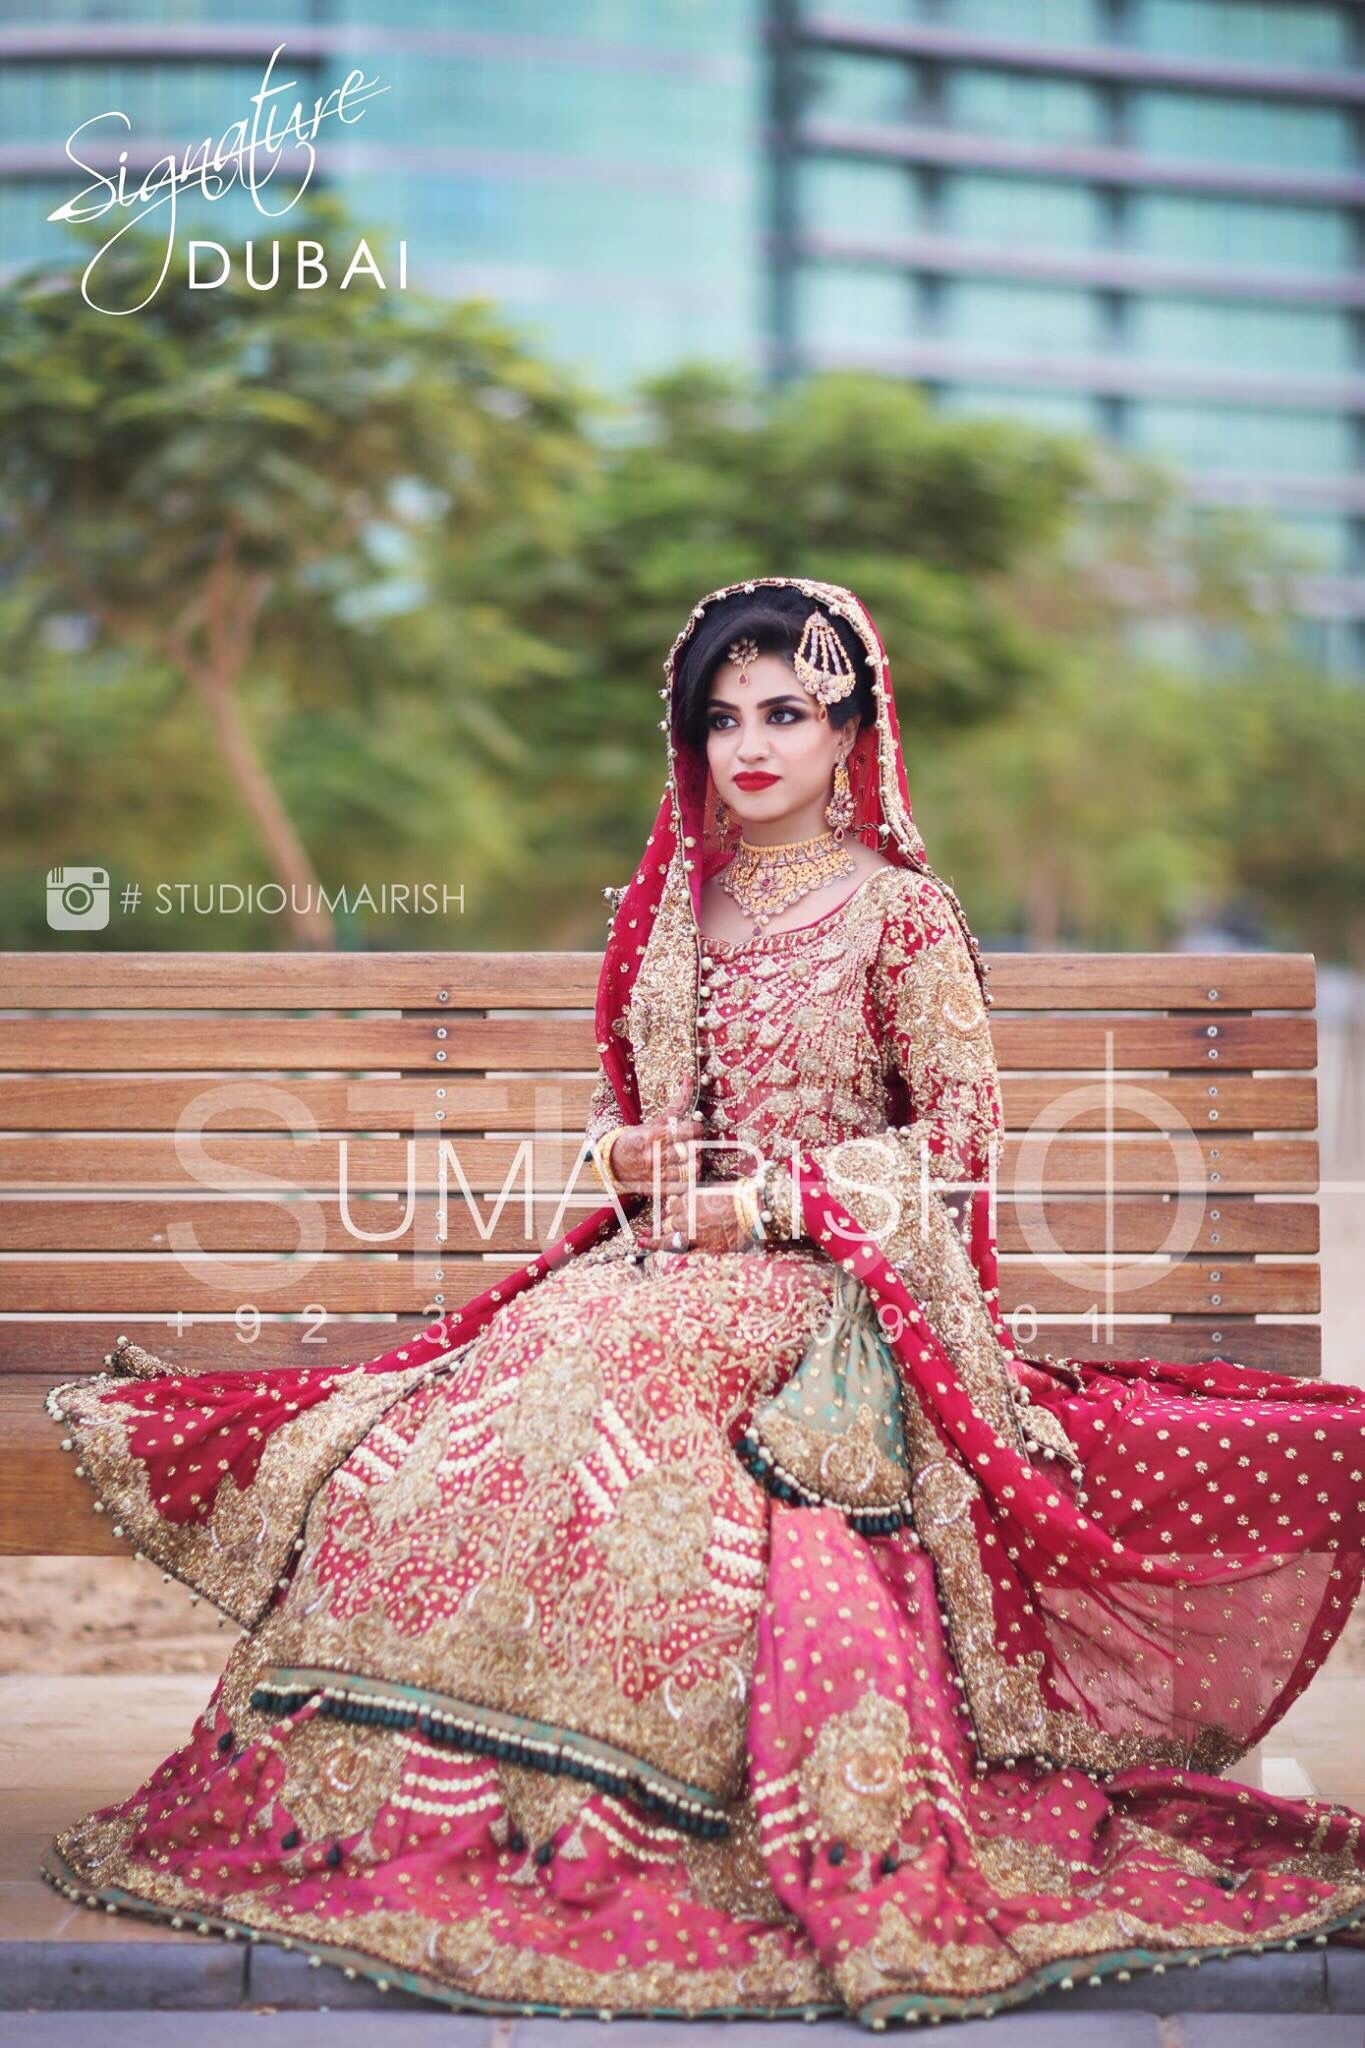 Pin de Anam Khan en Wedding/Desi clothes❤ ❤ ❤ | Pinterest